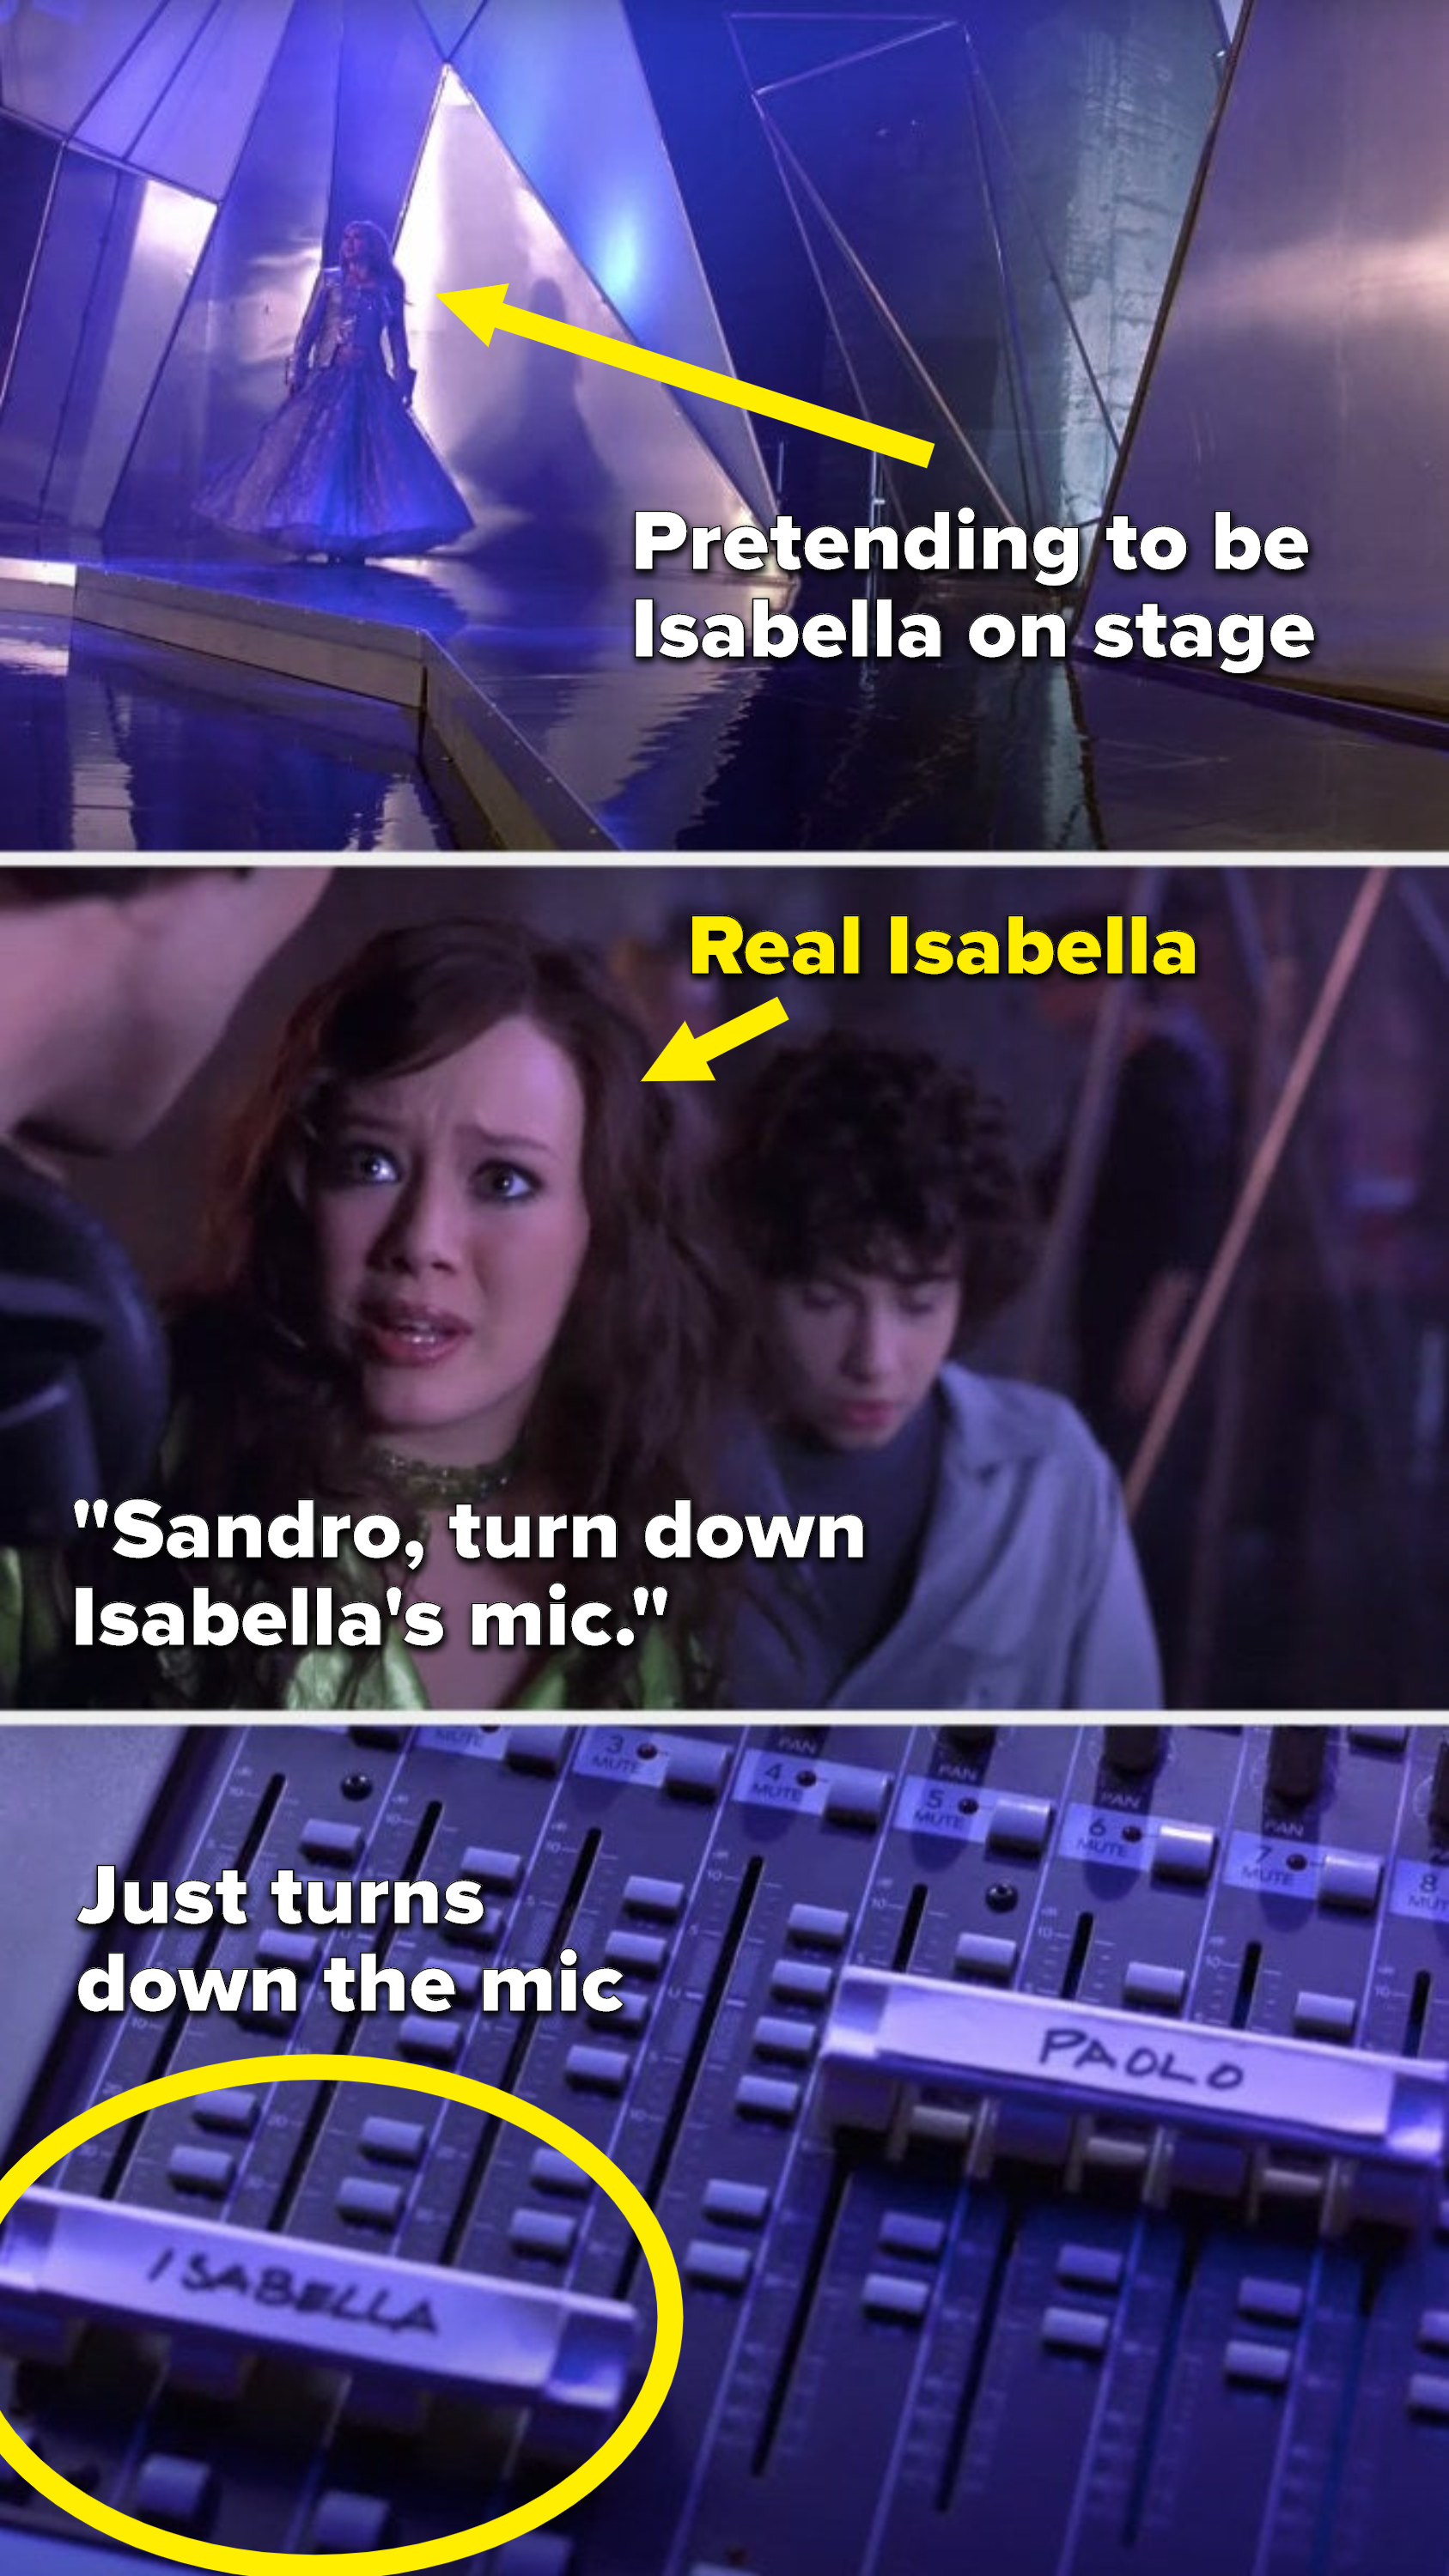 """Lizzie is on stage as Isabella, Isabella says to the sound guy, """"Sandro, turn down Isabella's mic,"""" and he just does it"""